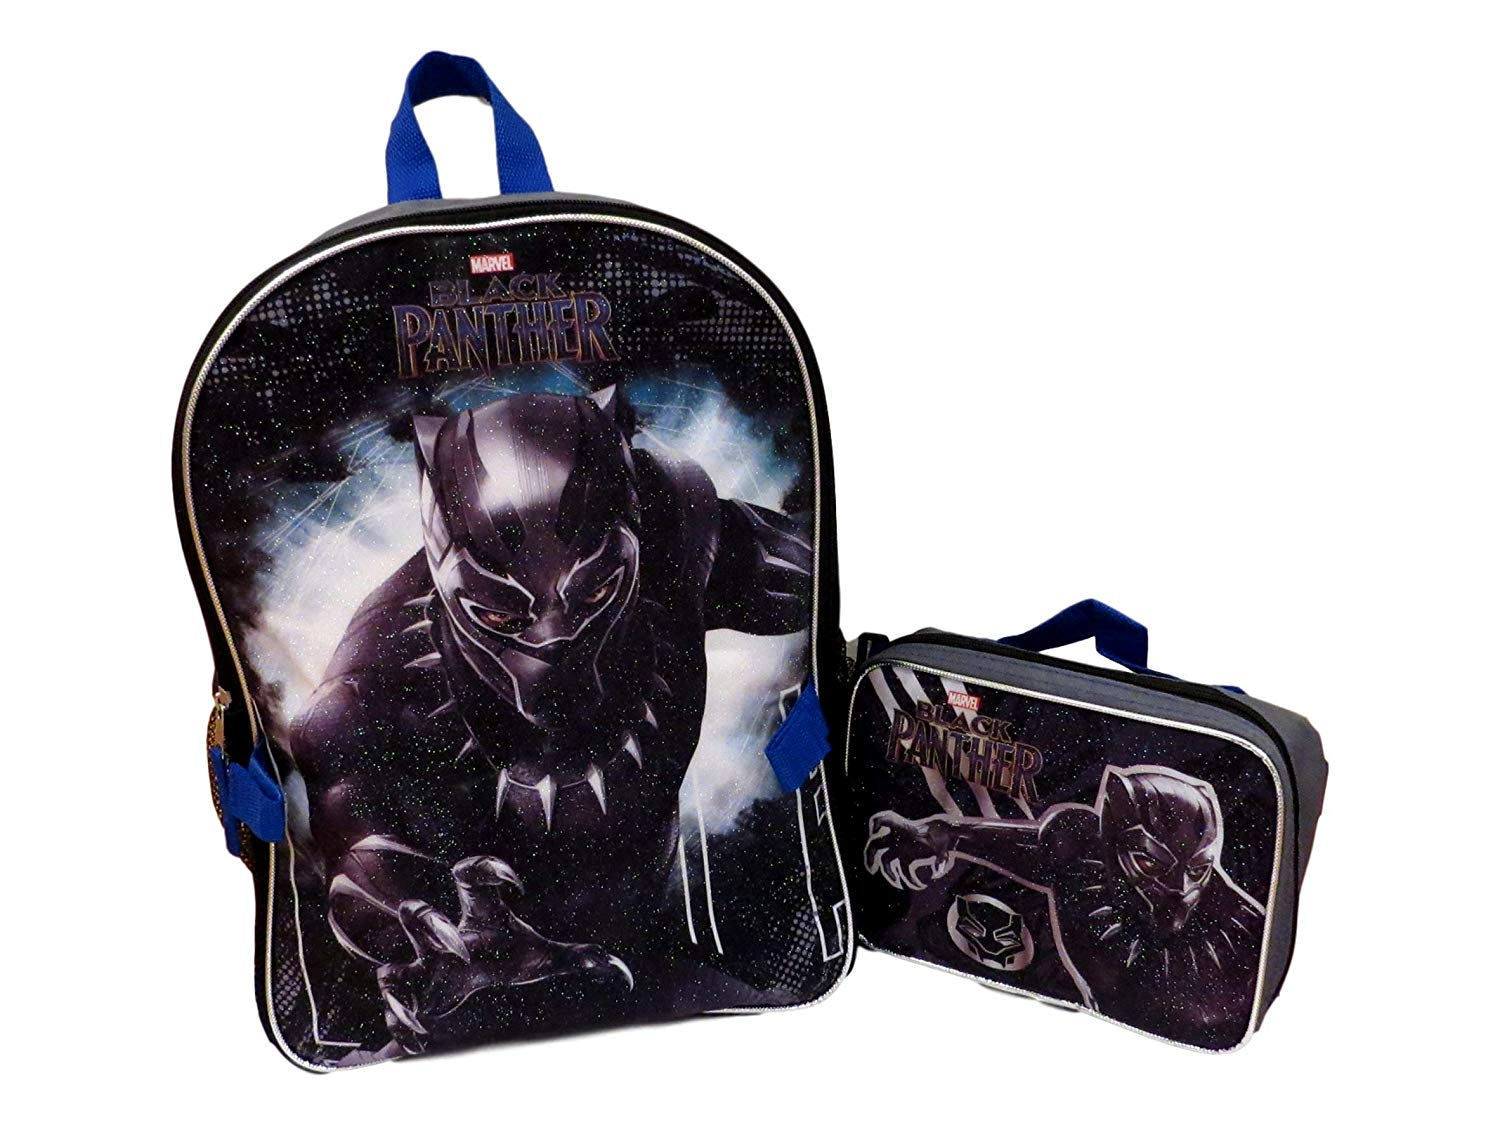 e6207cee7191 Get Quotations · Marvel Black Panther Full Size Backpack With Detachable  Matching Insulated Lunch Box